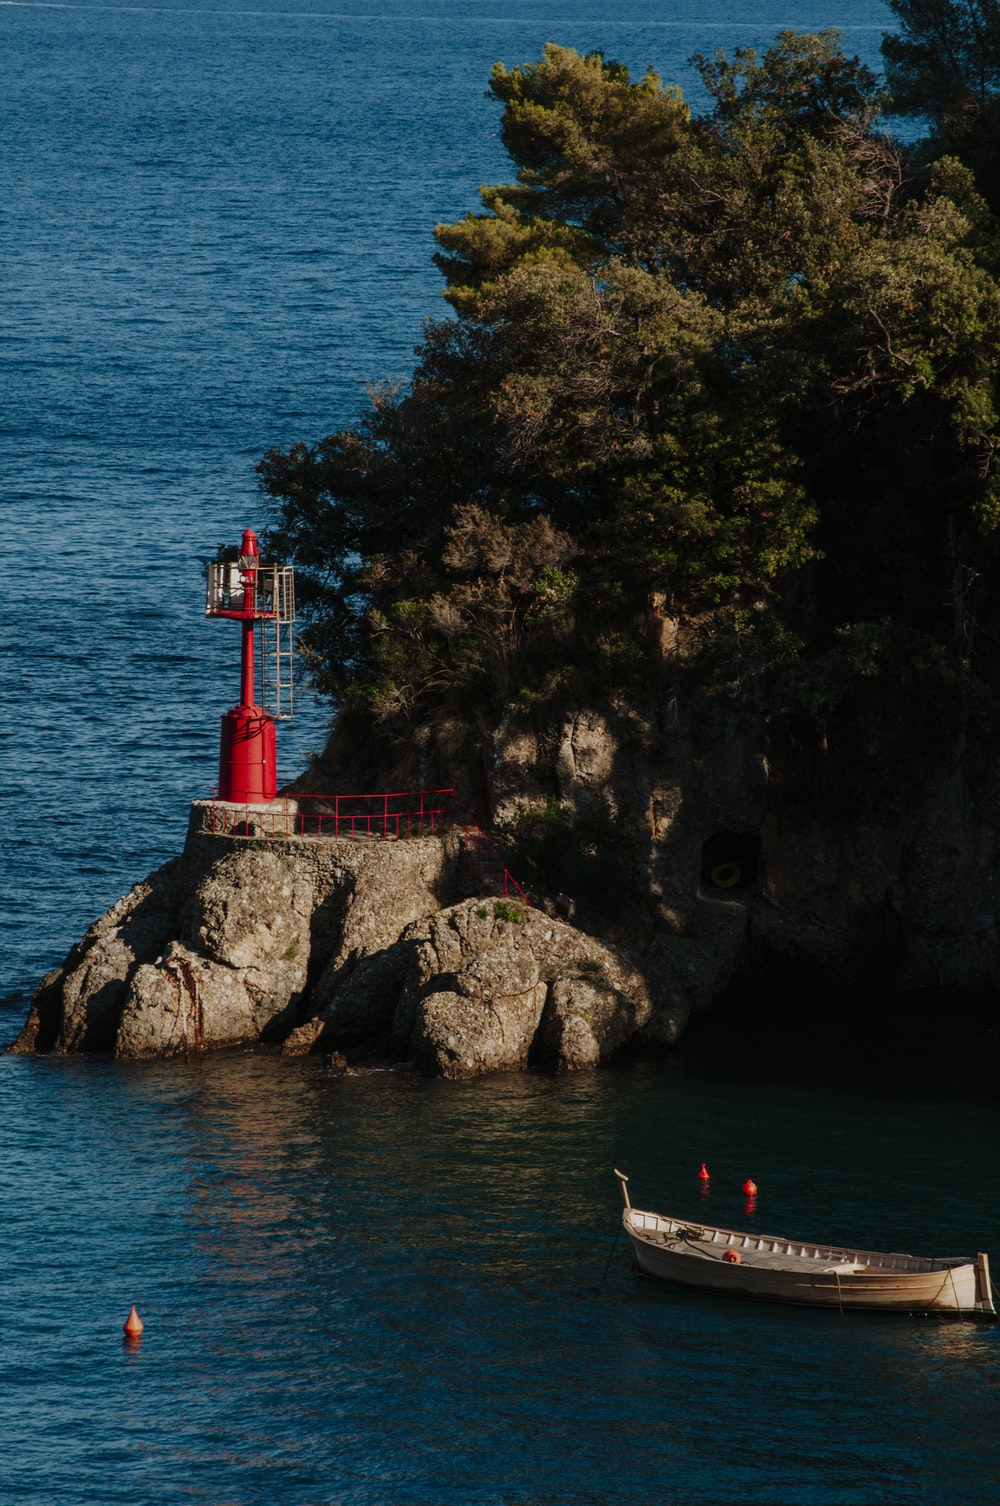 people on a rocky beach with a red tower in the distance